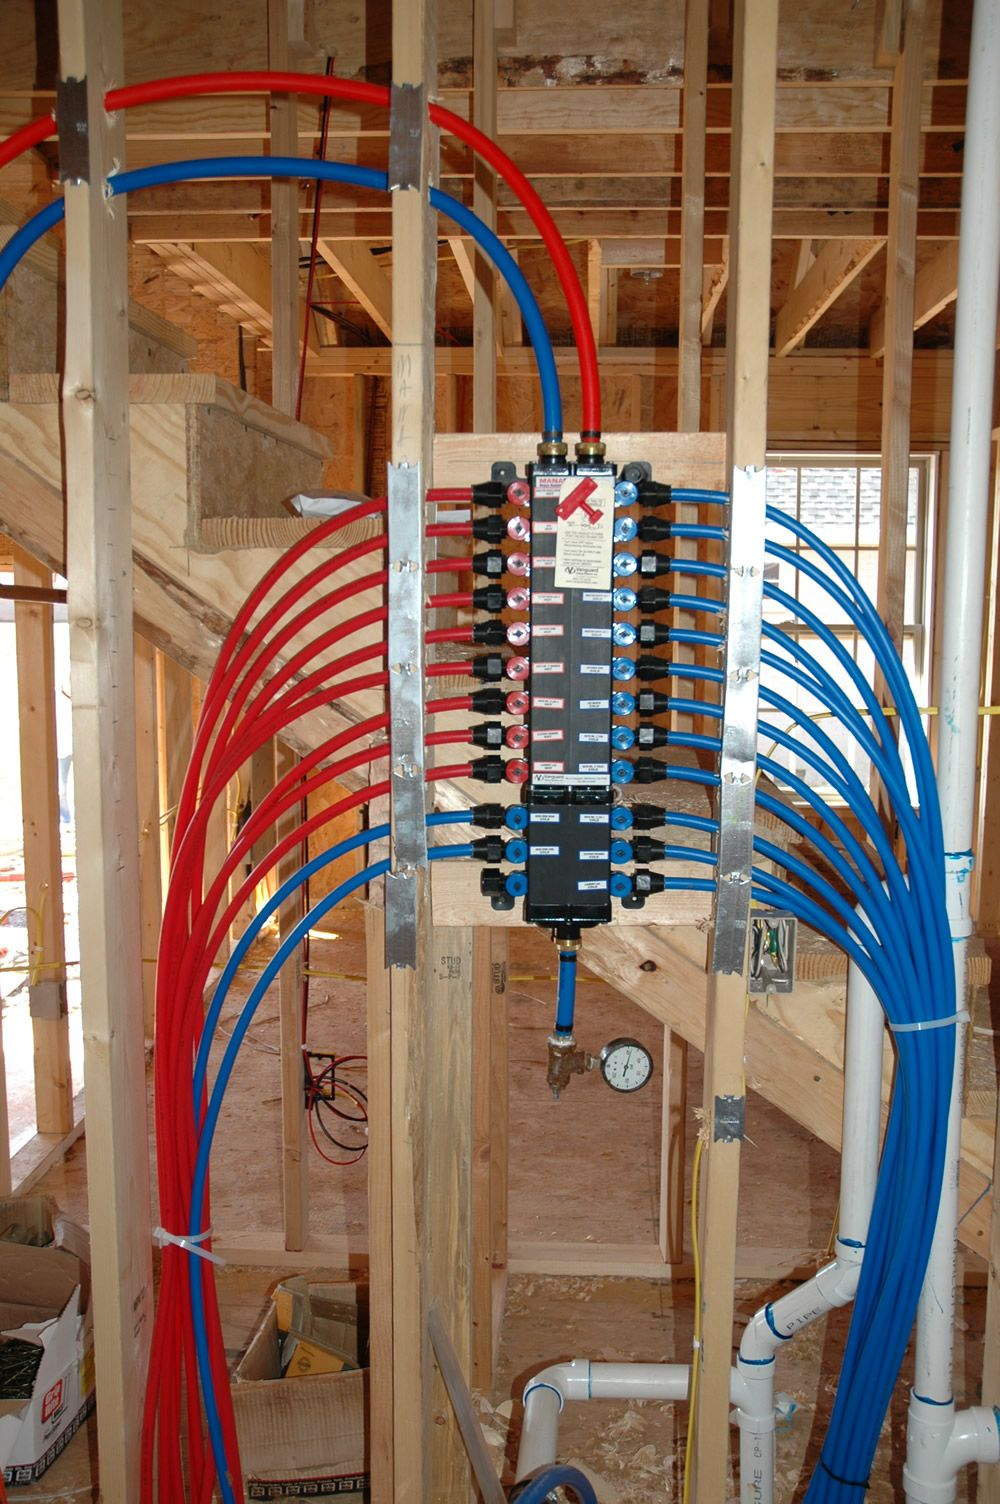 Helping You Build Your Legacy With Quality You Can Count On Pex Plumbing Diy Plumbing Heating And Plumbing